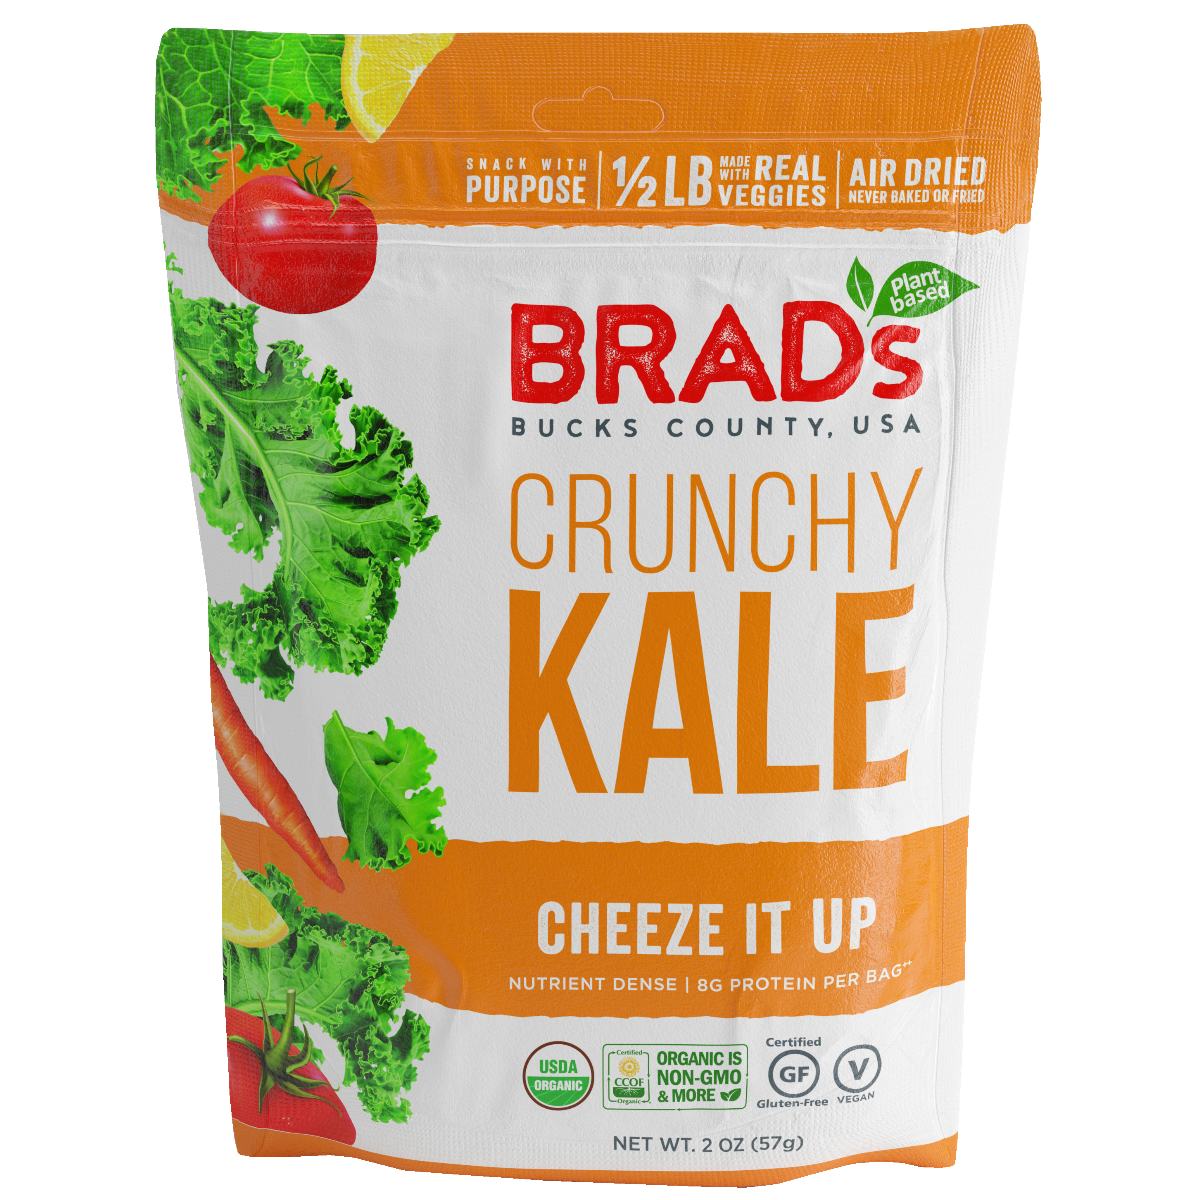 Brads Plant Based: Crunchy Kale Cheeze It Up, 2 Oz